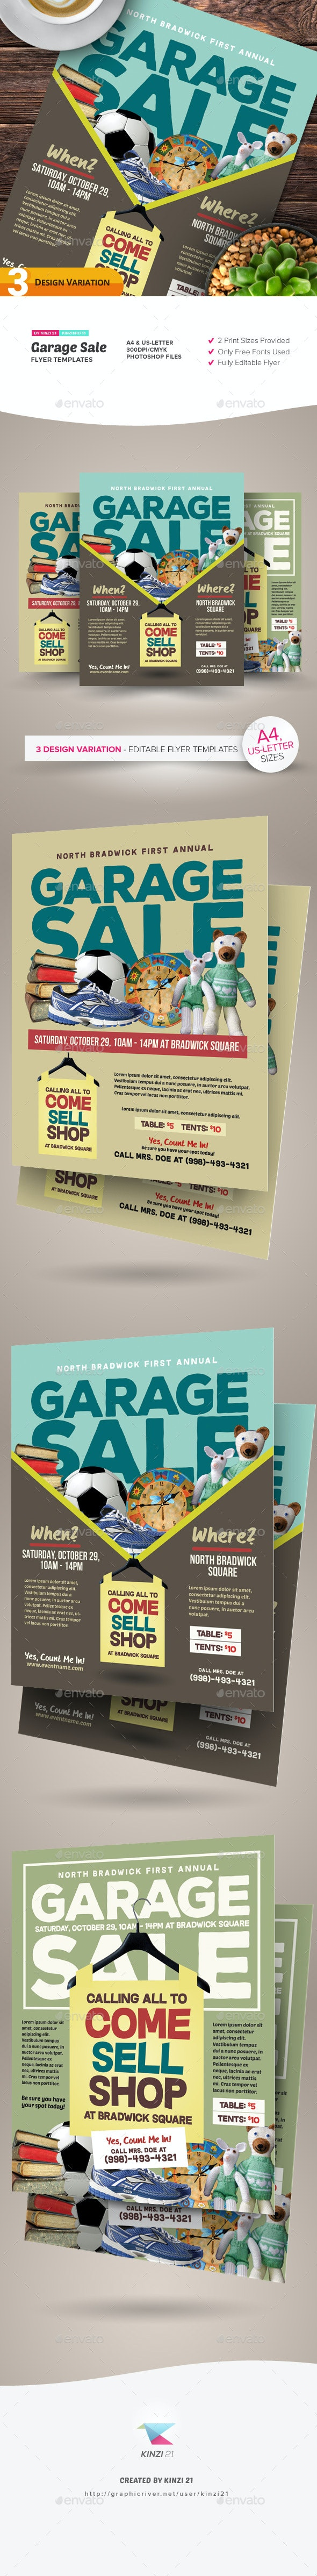 Garage Sale Flyer Templates By Kinzishots Graphicriver